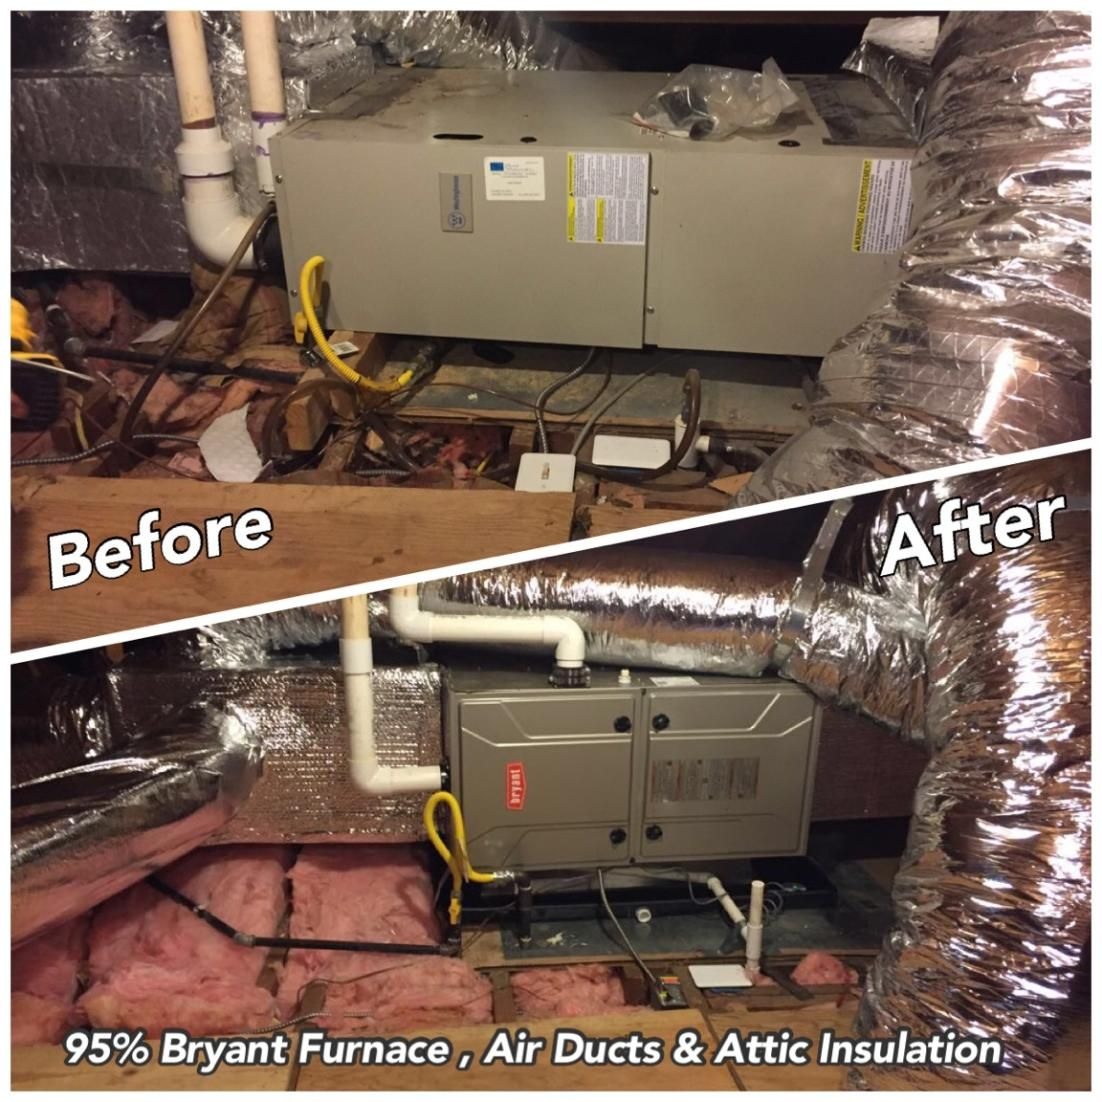 Before u00 after photos of a Bryant furnace, air ducts